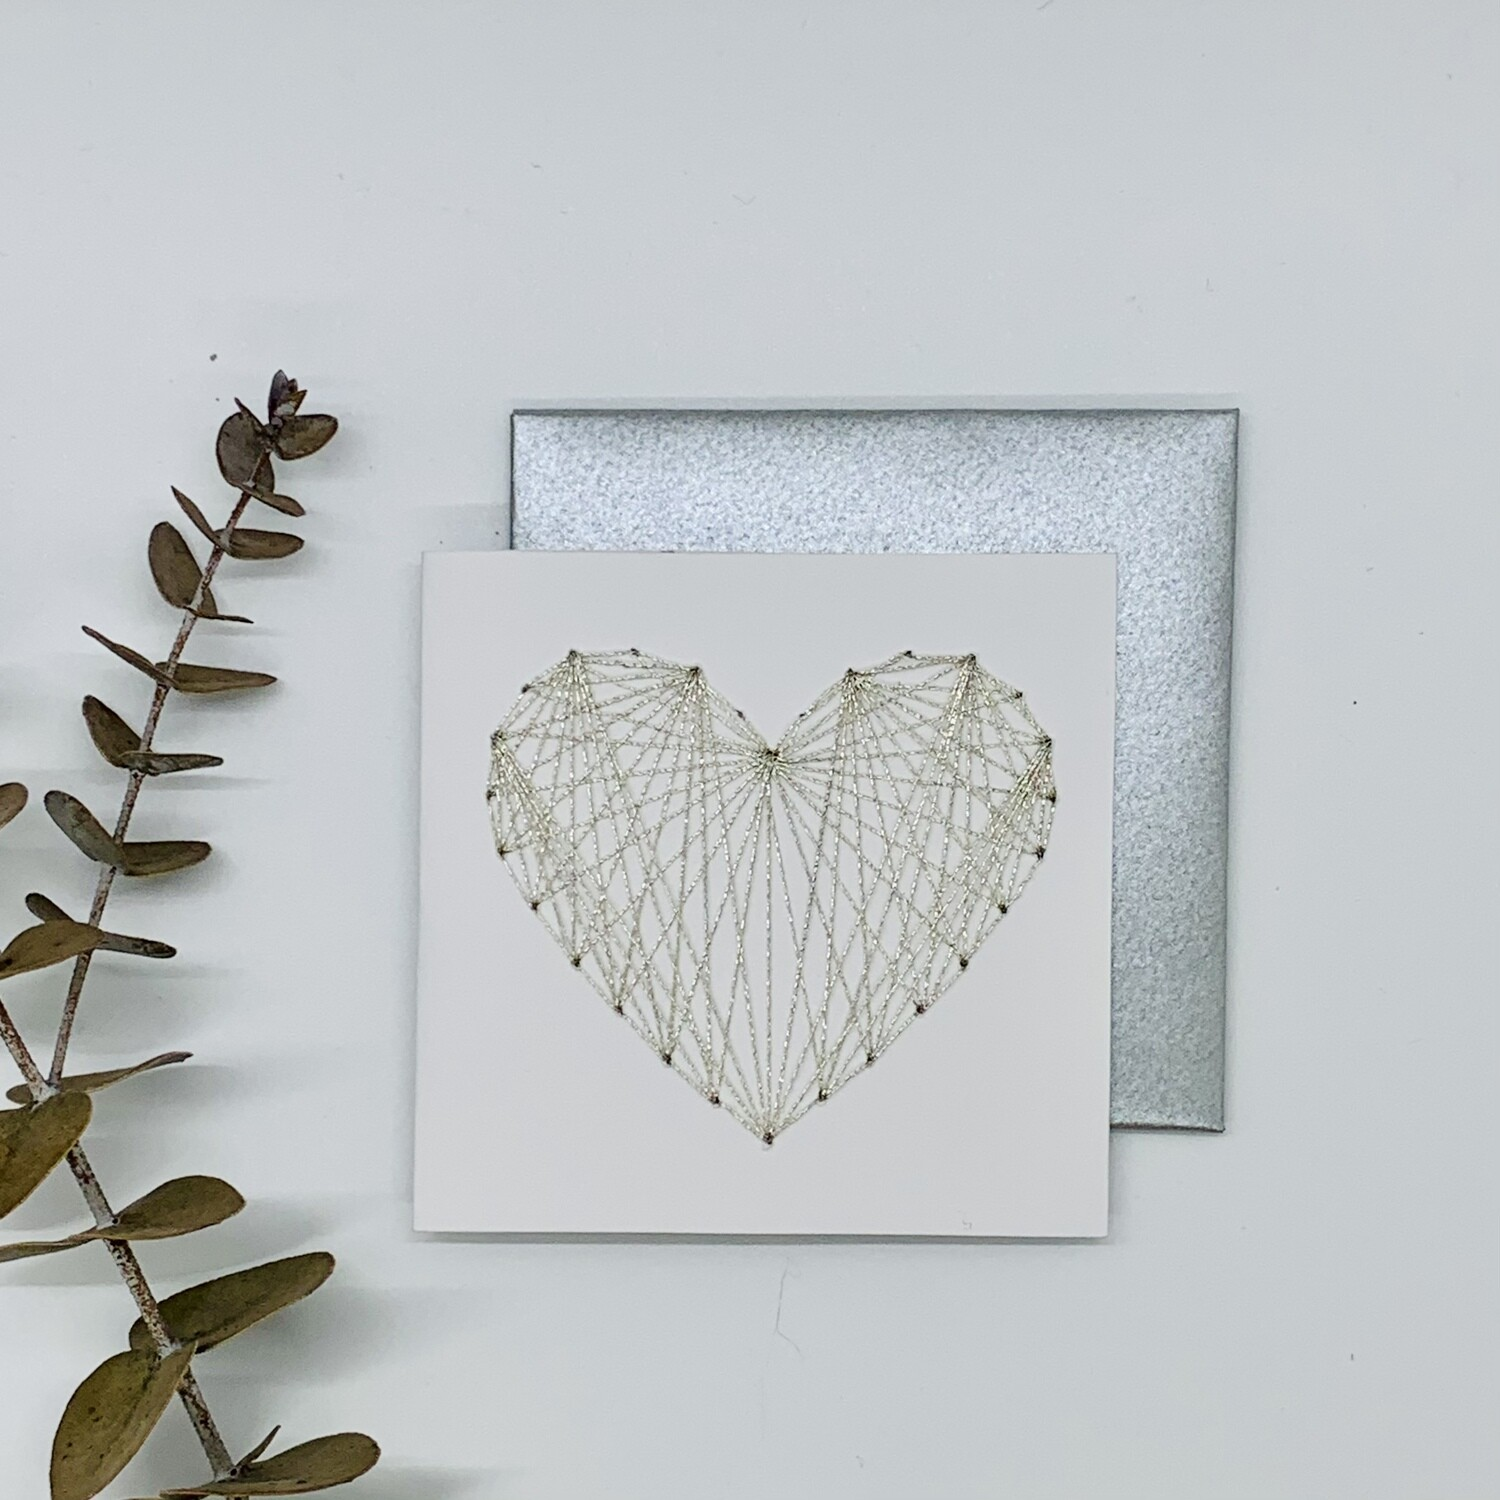 Small Card, Metallic Silver String Heart on White